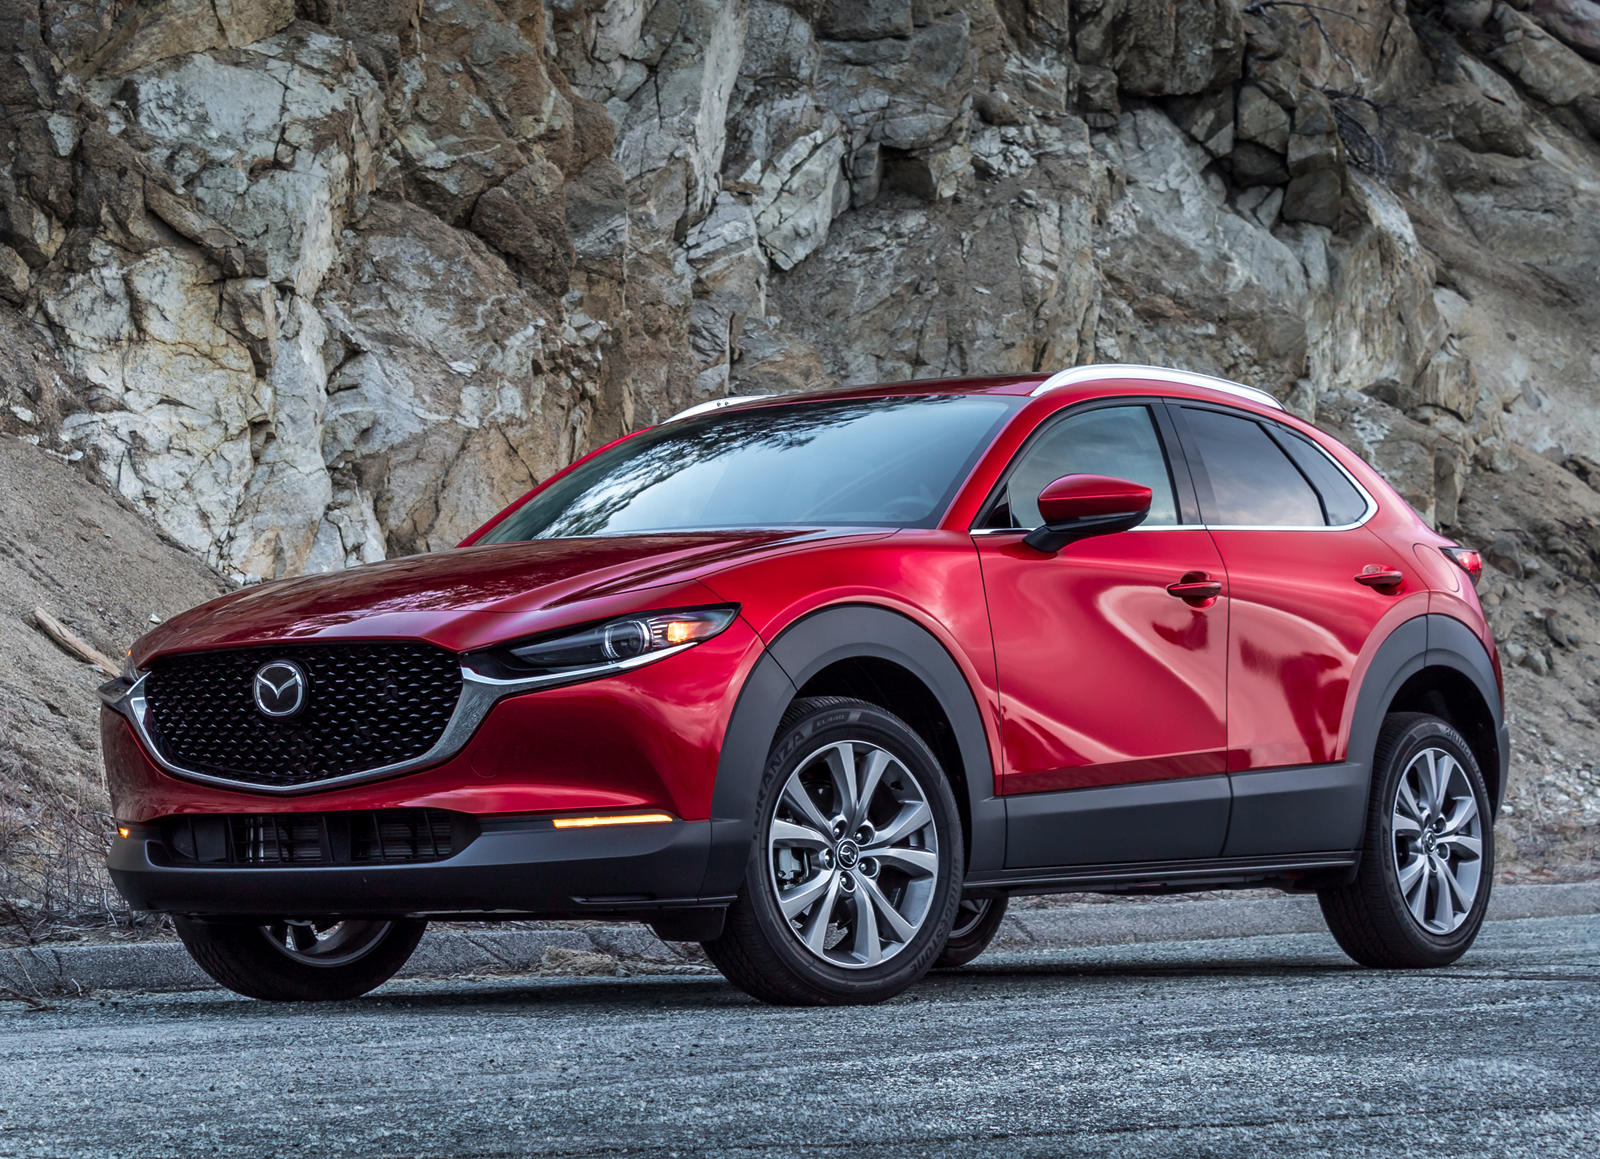 2021 Mazda CX-30 2.5 S Arrives With More Features, Same ...